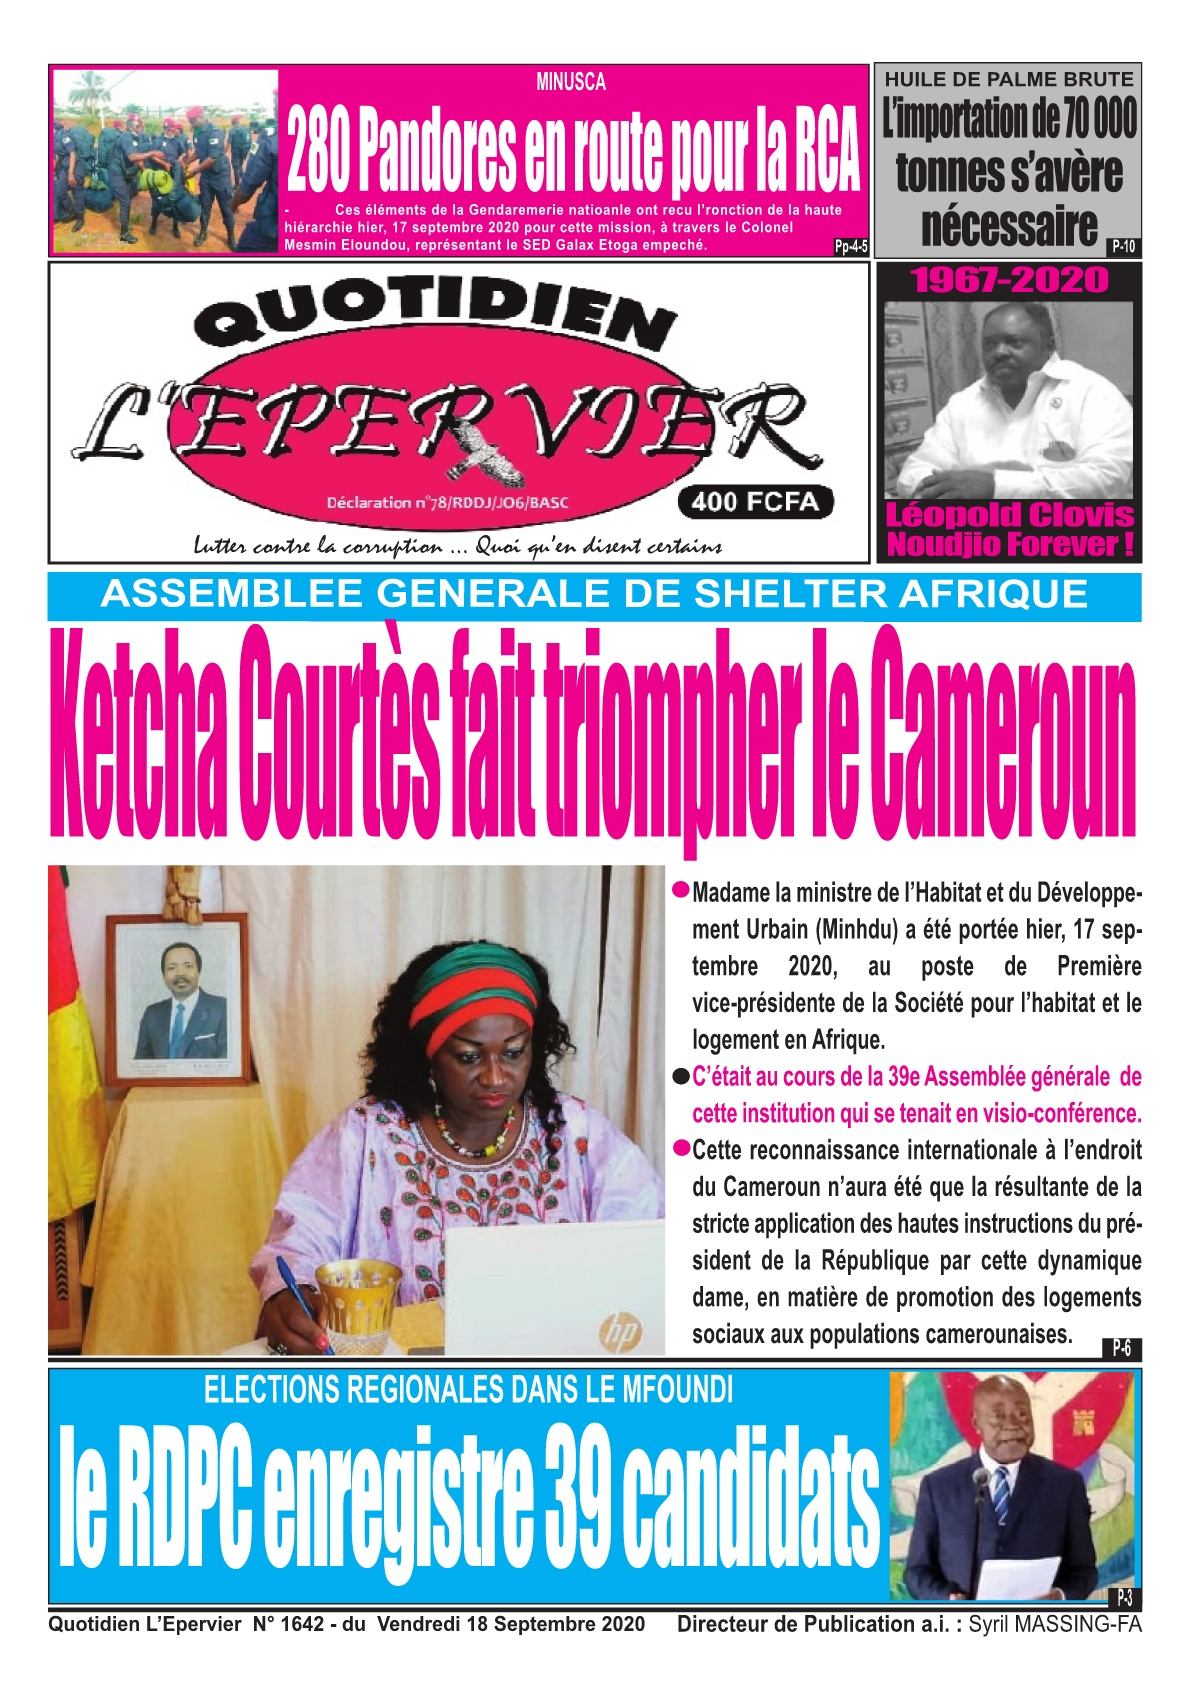 L'Epervier - 21/09/2020